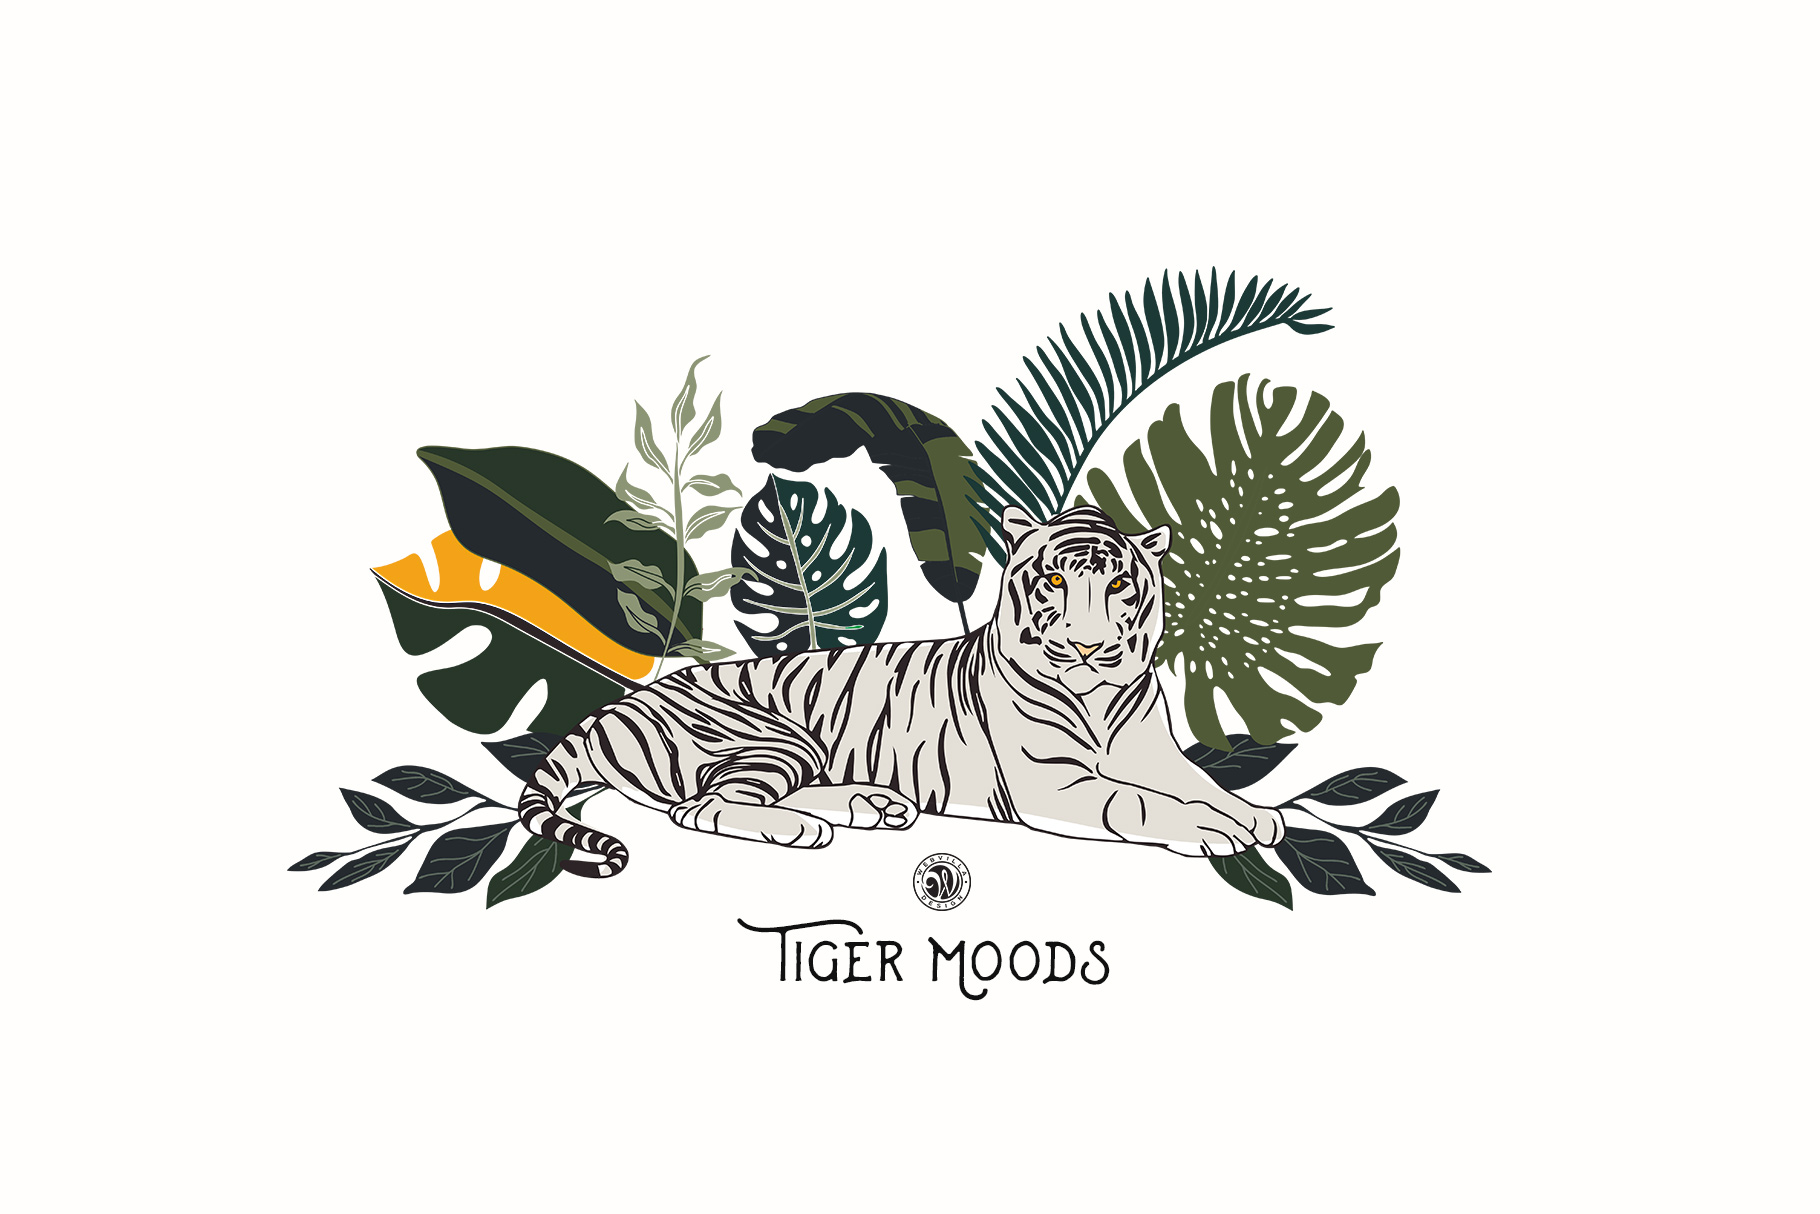 Tiger Moods example image 6